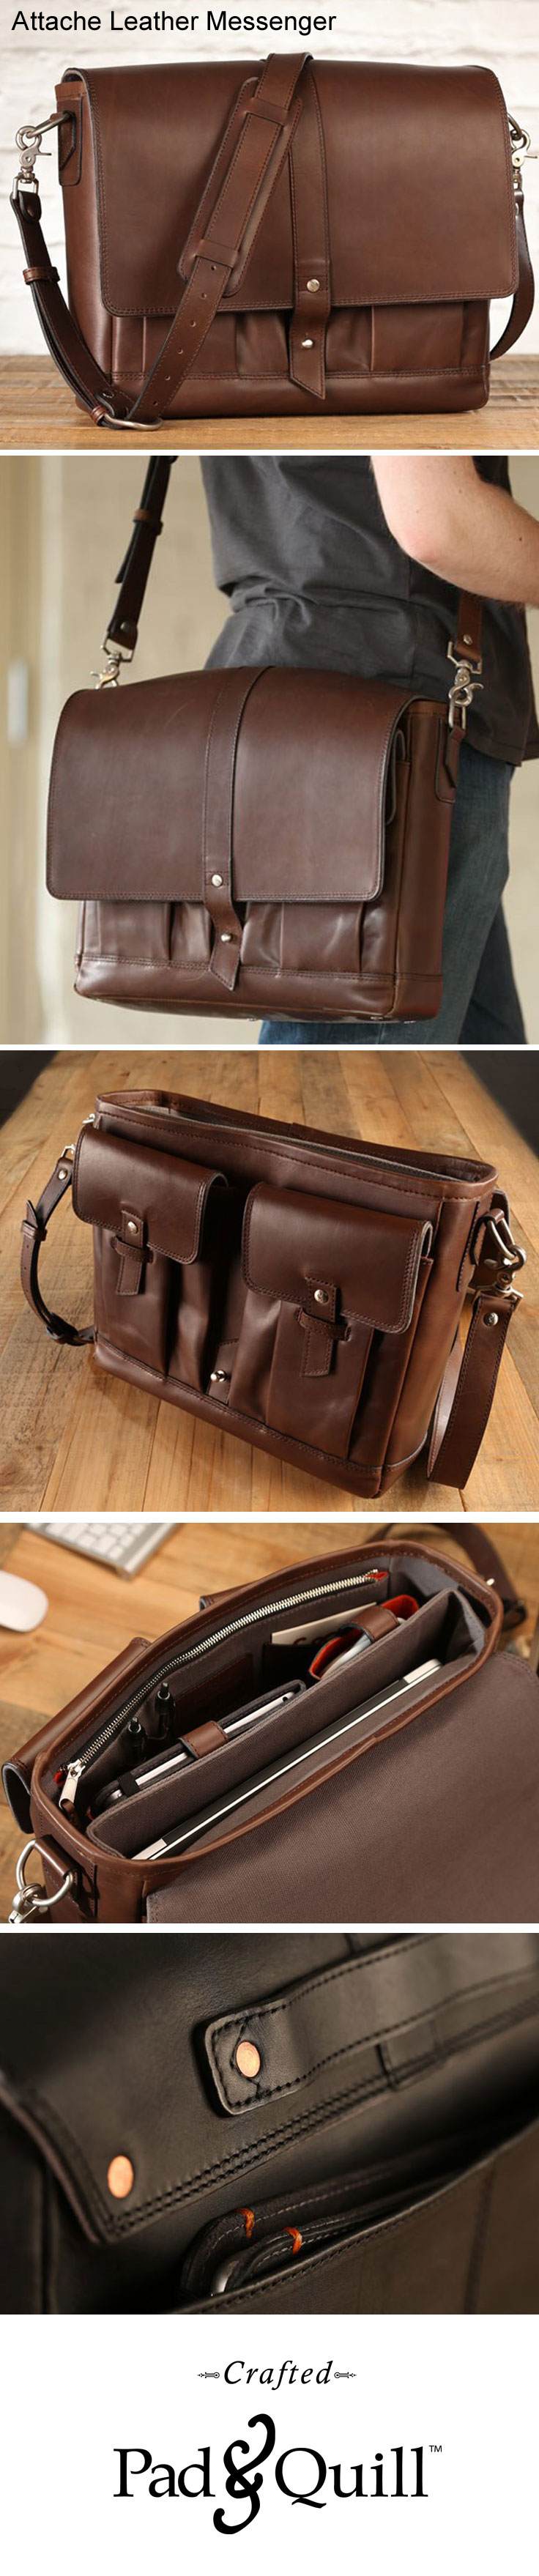 """The Attaché is the perfect companion to a busy professional who works hard and has earned an appreciation for the finer things of life. Hand cut full grain leather, tons of pockets to fit up to a 15"""" Macbook, iPad, chargers, and plenty more. www.PadandQuill.com"""